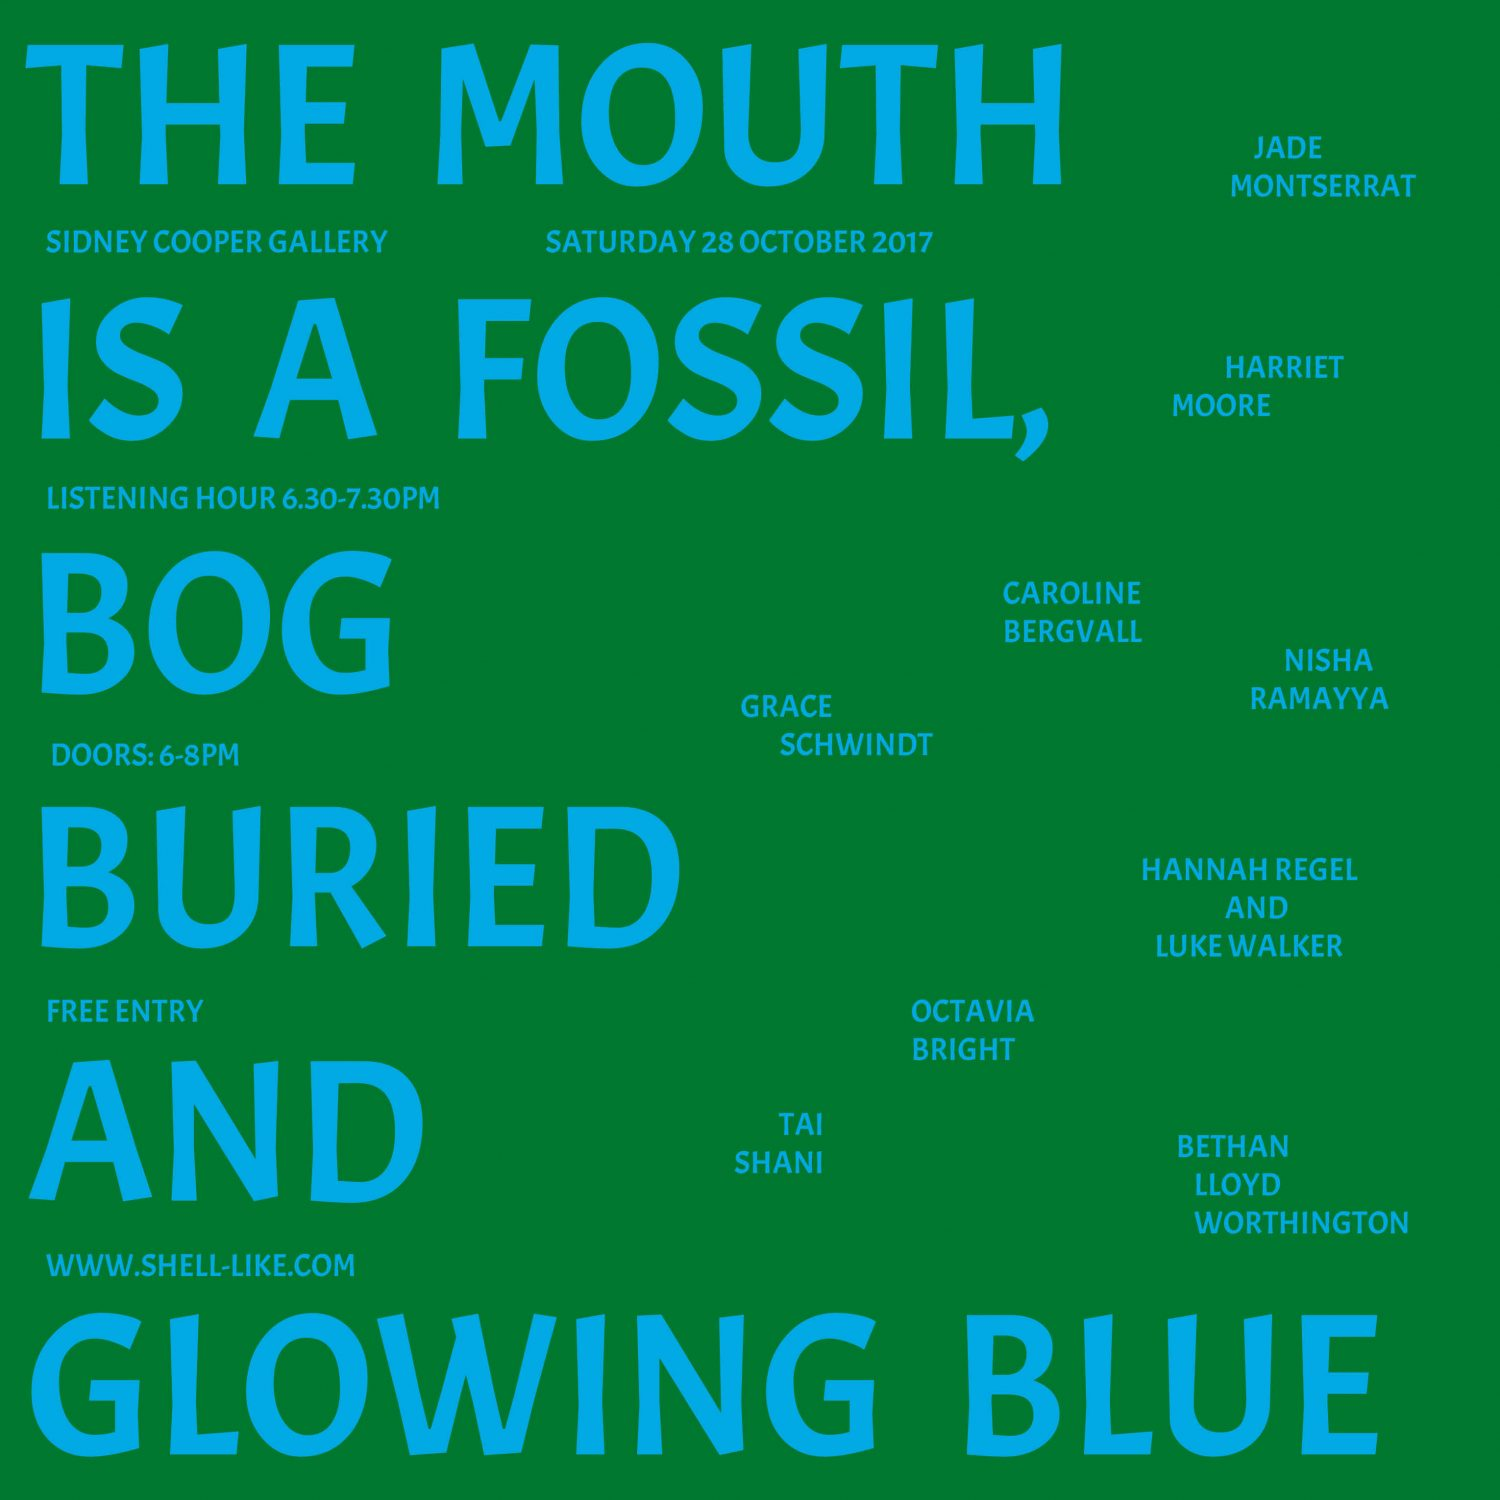 THE MOUTH IS A FOSSIL, BOG BURIED AND GLOWING BLUE SHELL-LIKE Bethan Lloyd Worthington